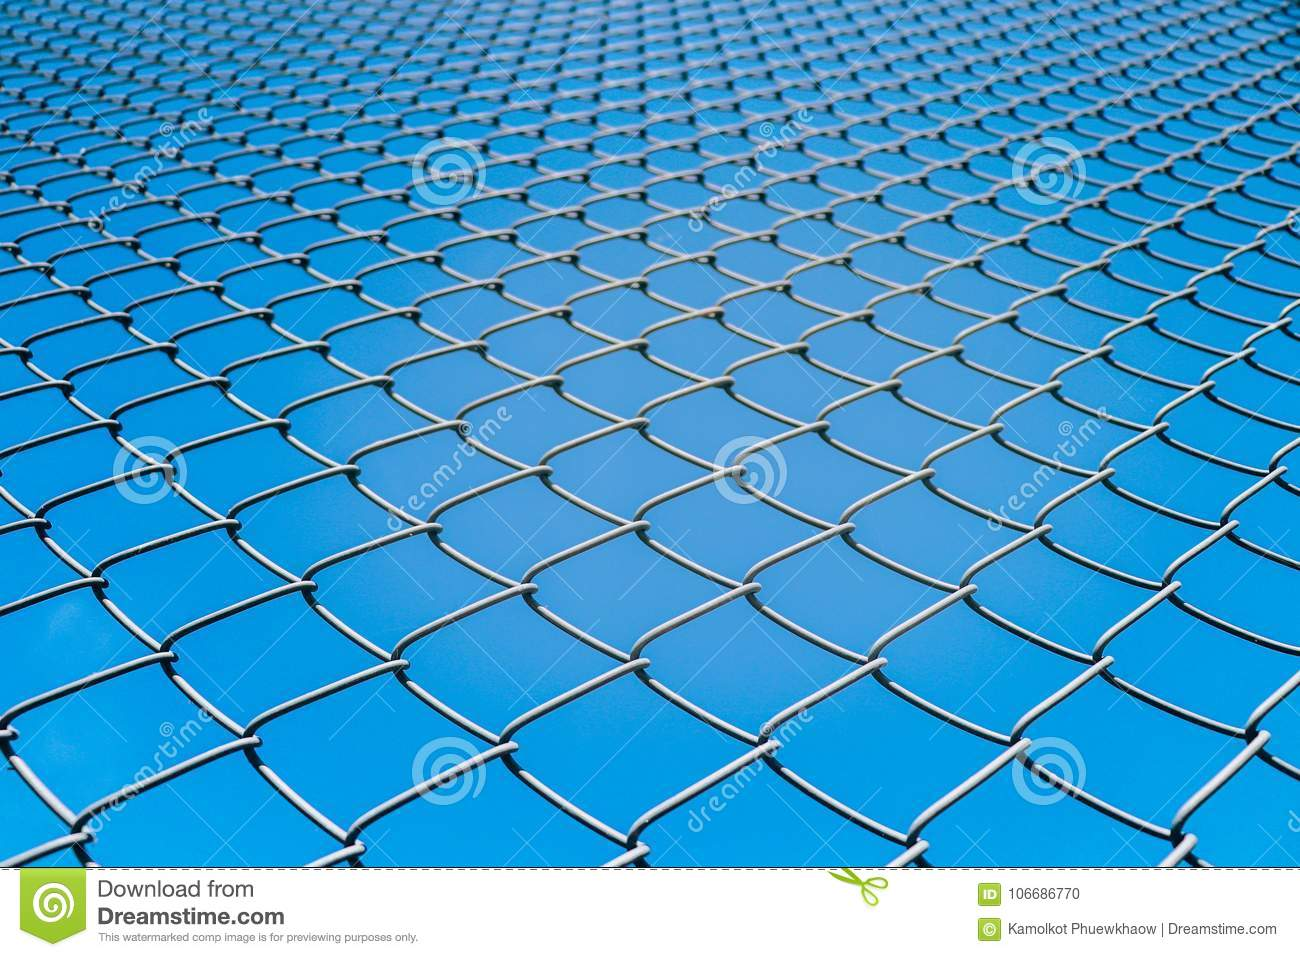 Wire Fence Or Metal Net On Blue Sky Background Stock Photo - Image ...